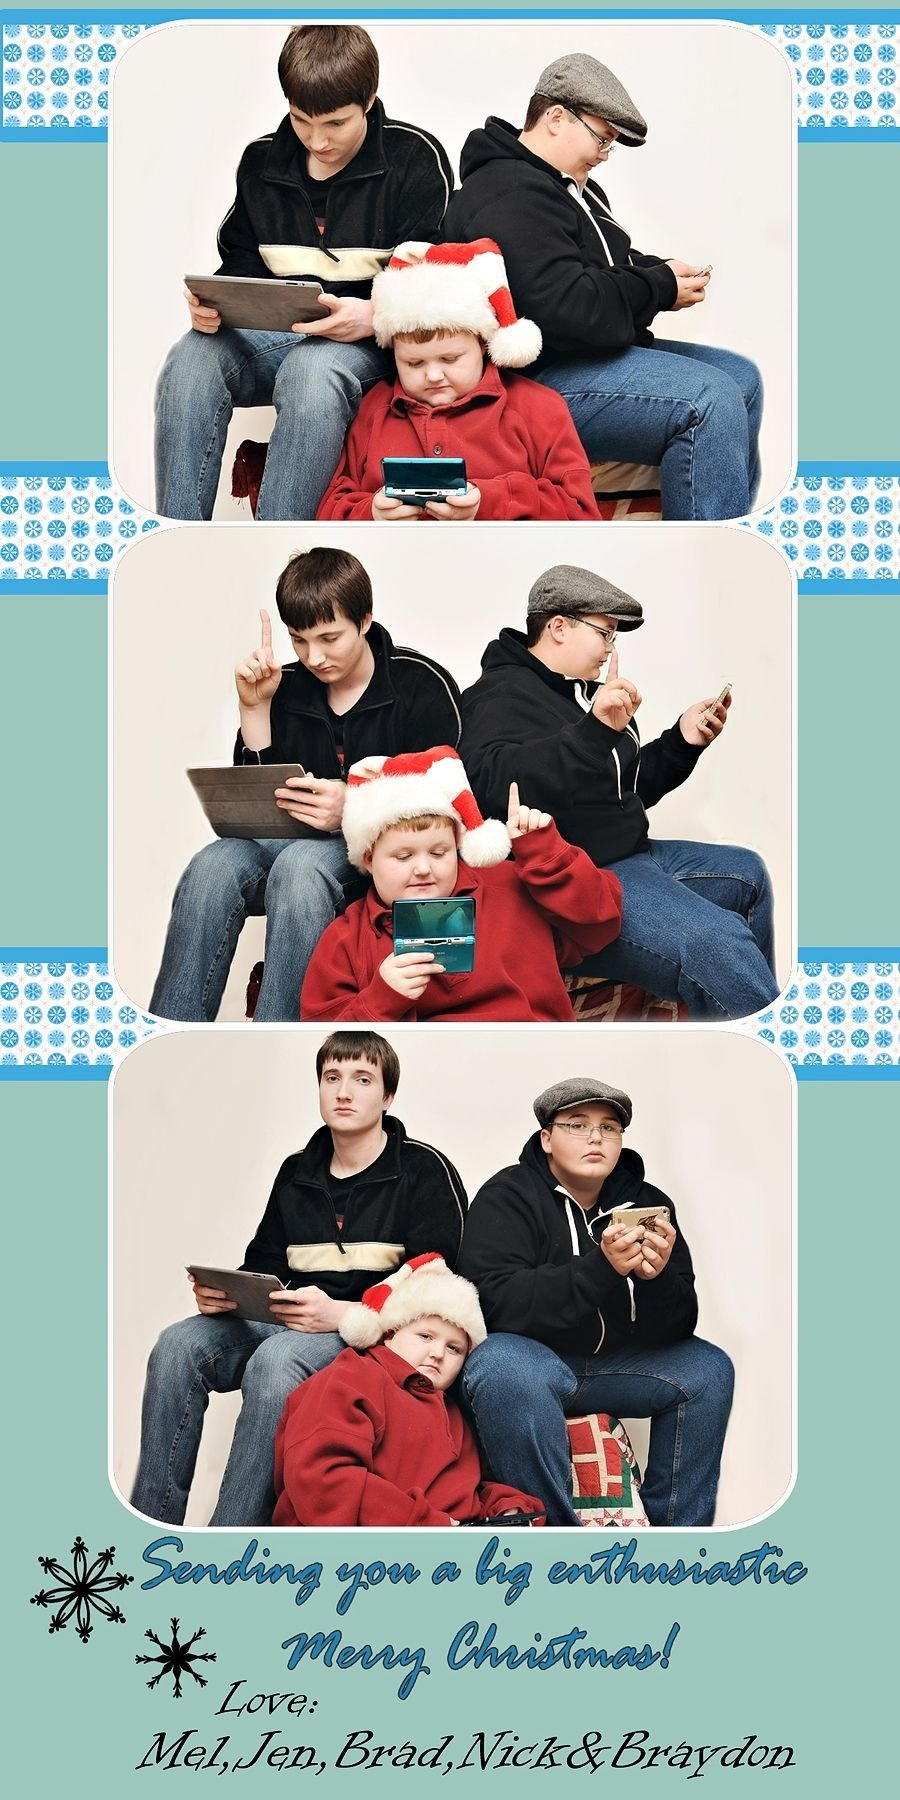 10 Most Popular Christmas Card Ideas With Kids photo card ideas for older kids christmas photo card photography 2020